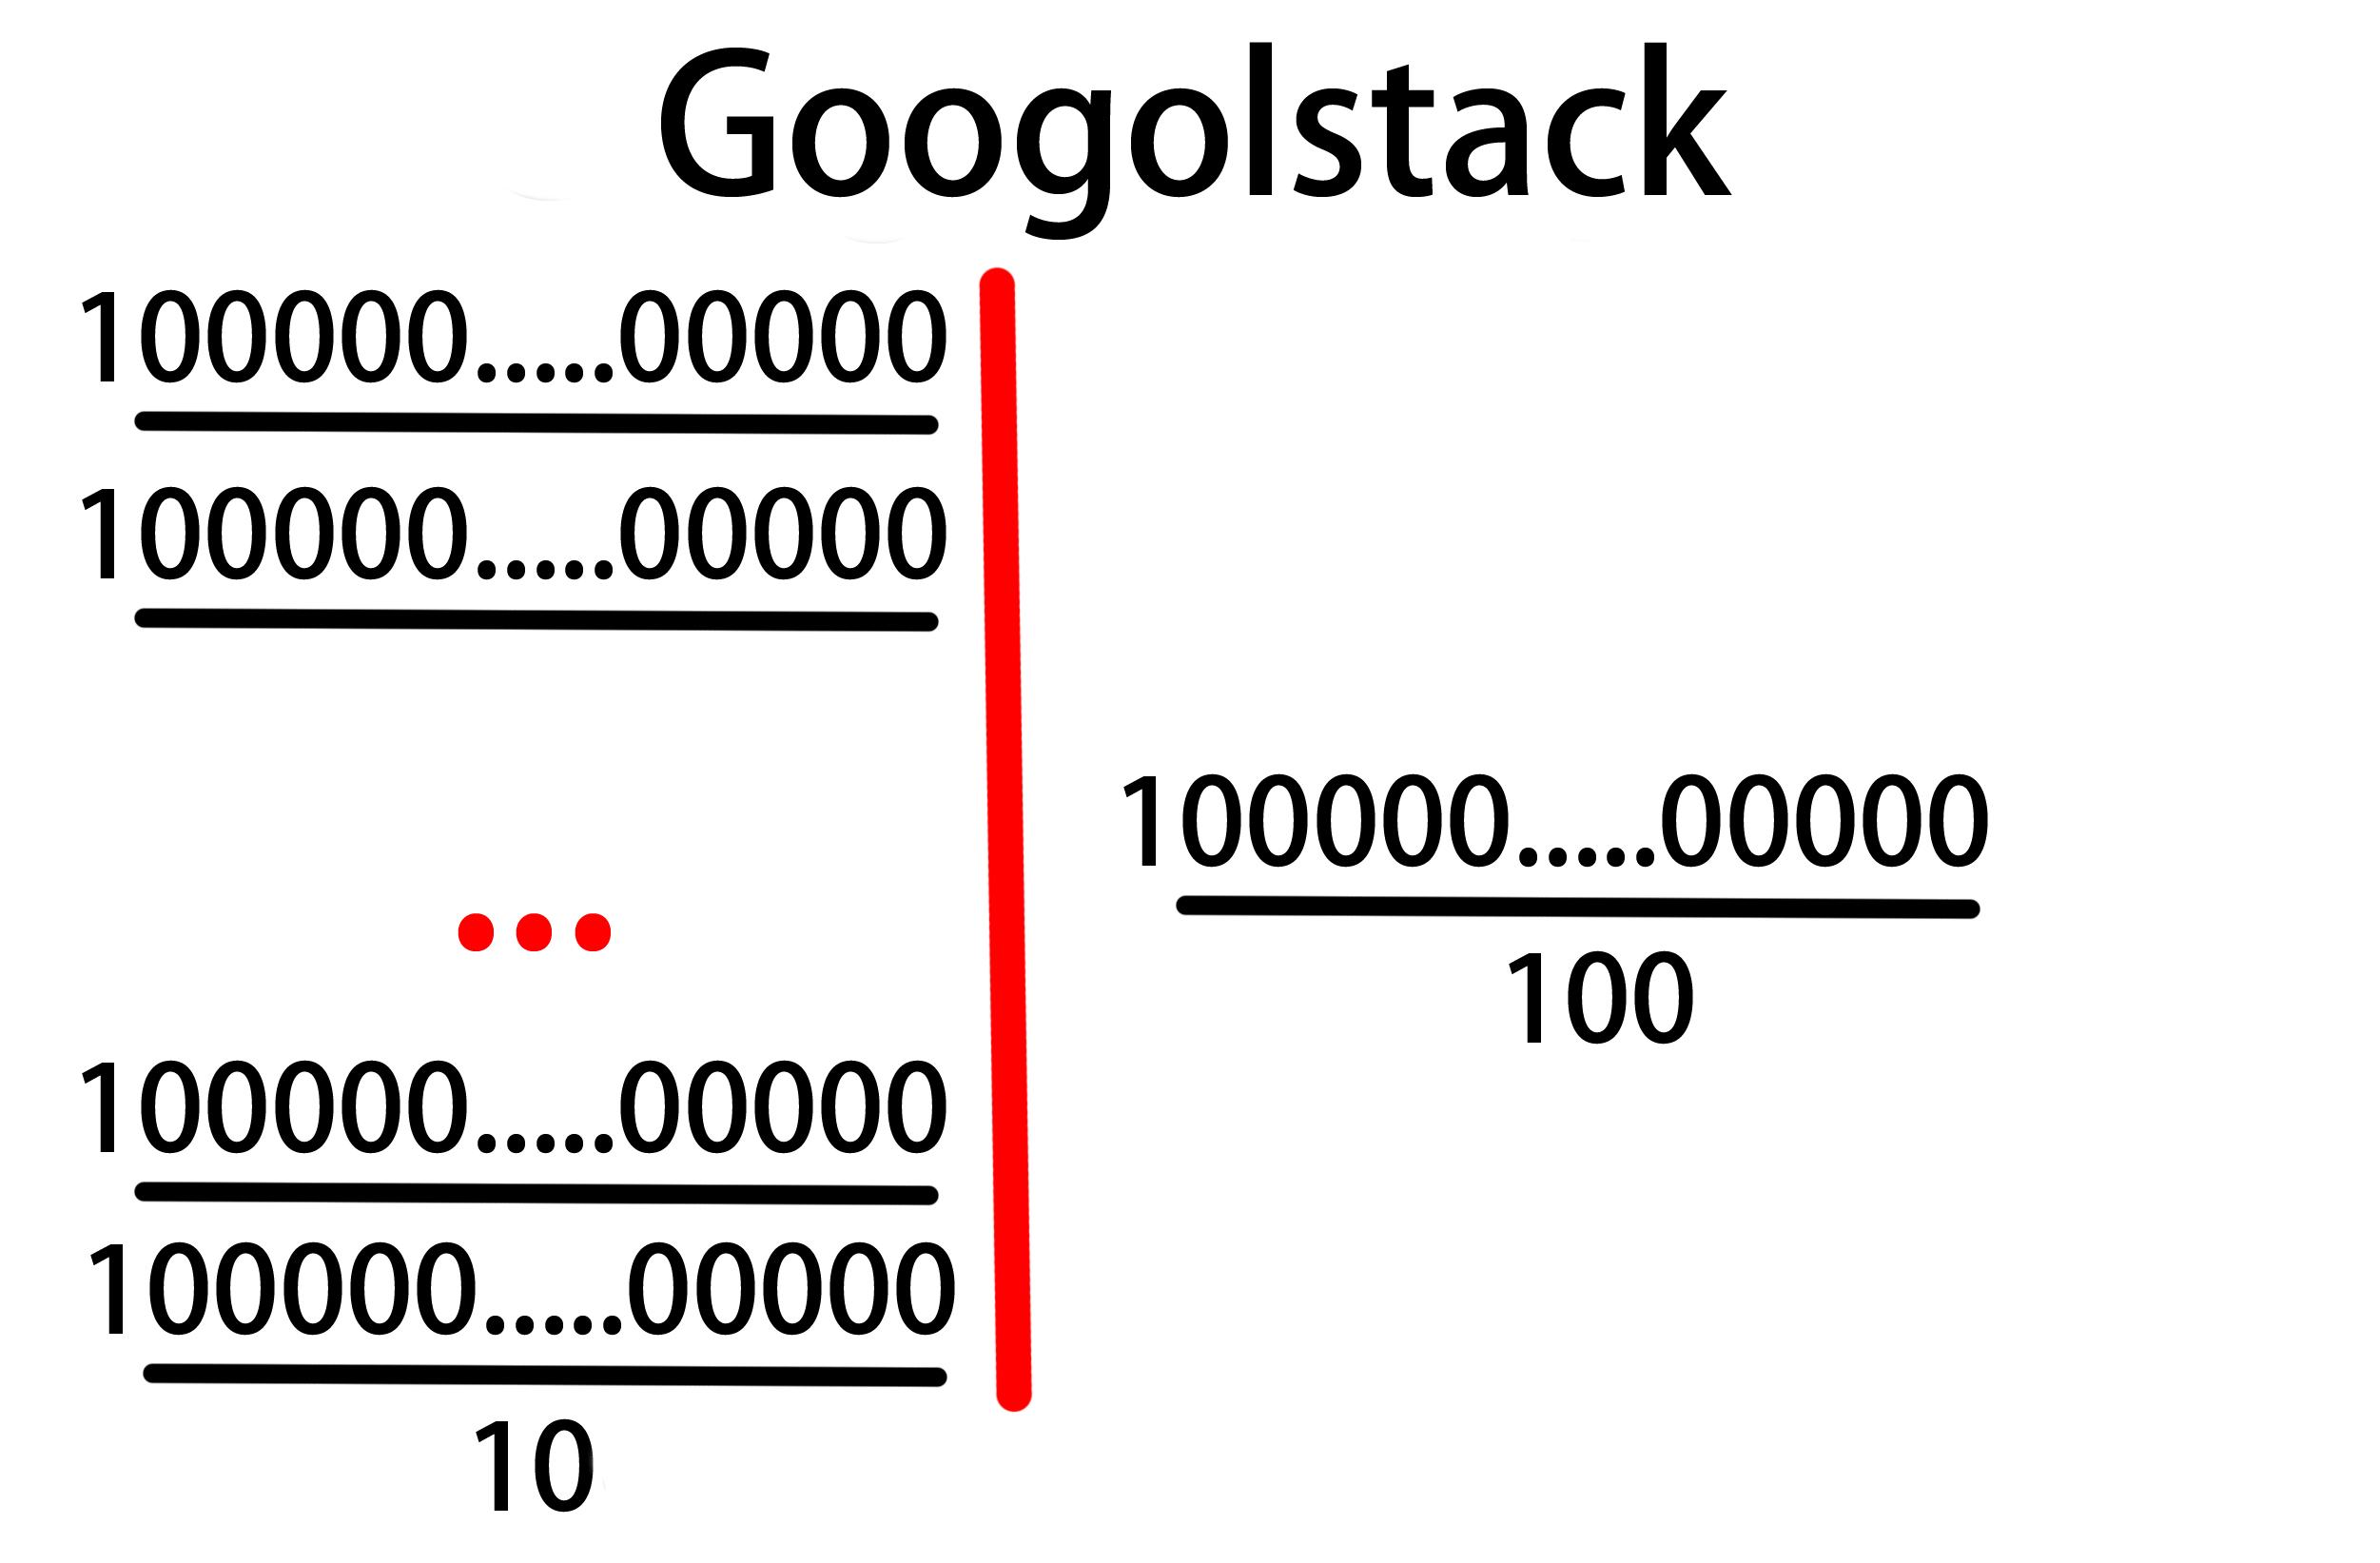 Googol-stack